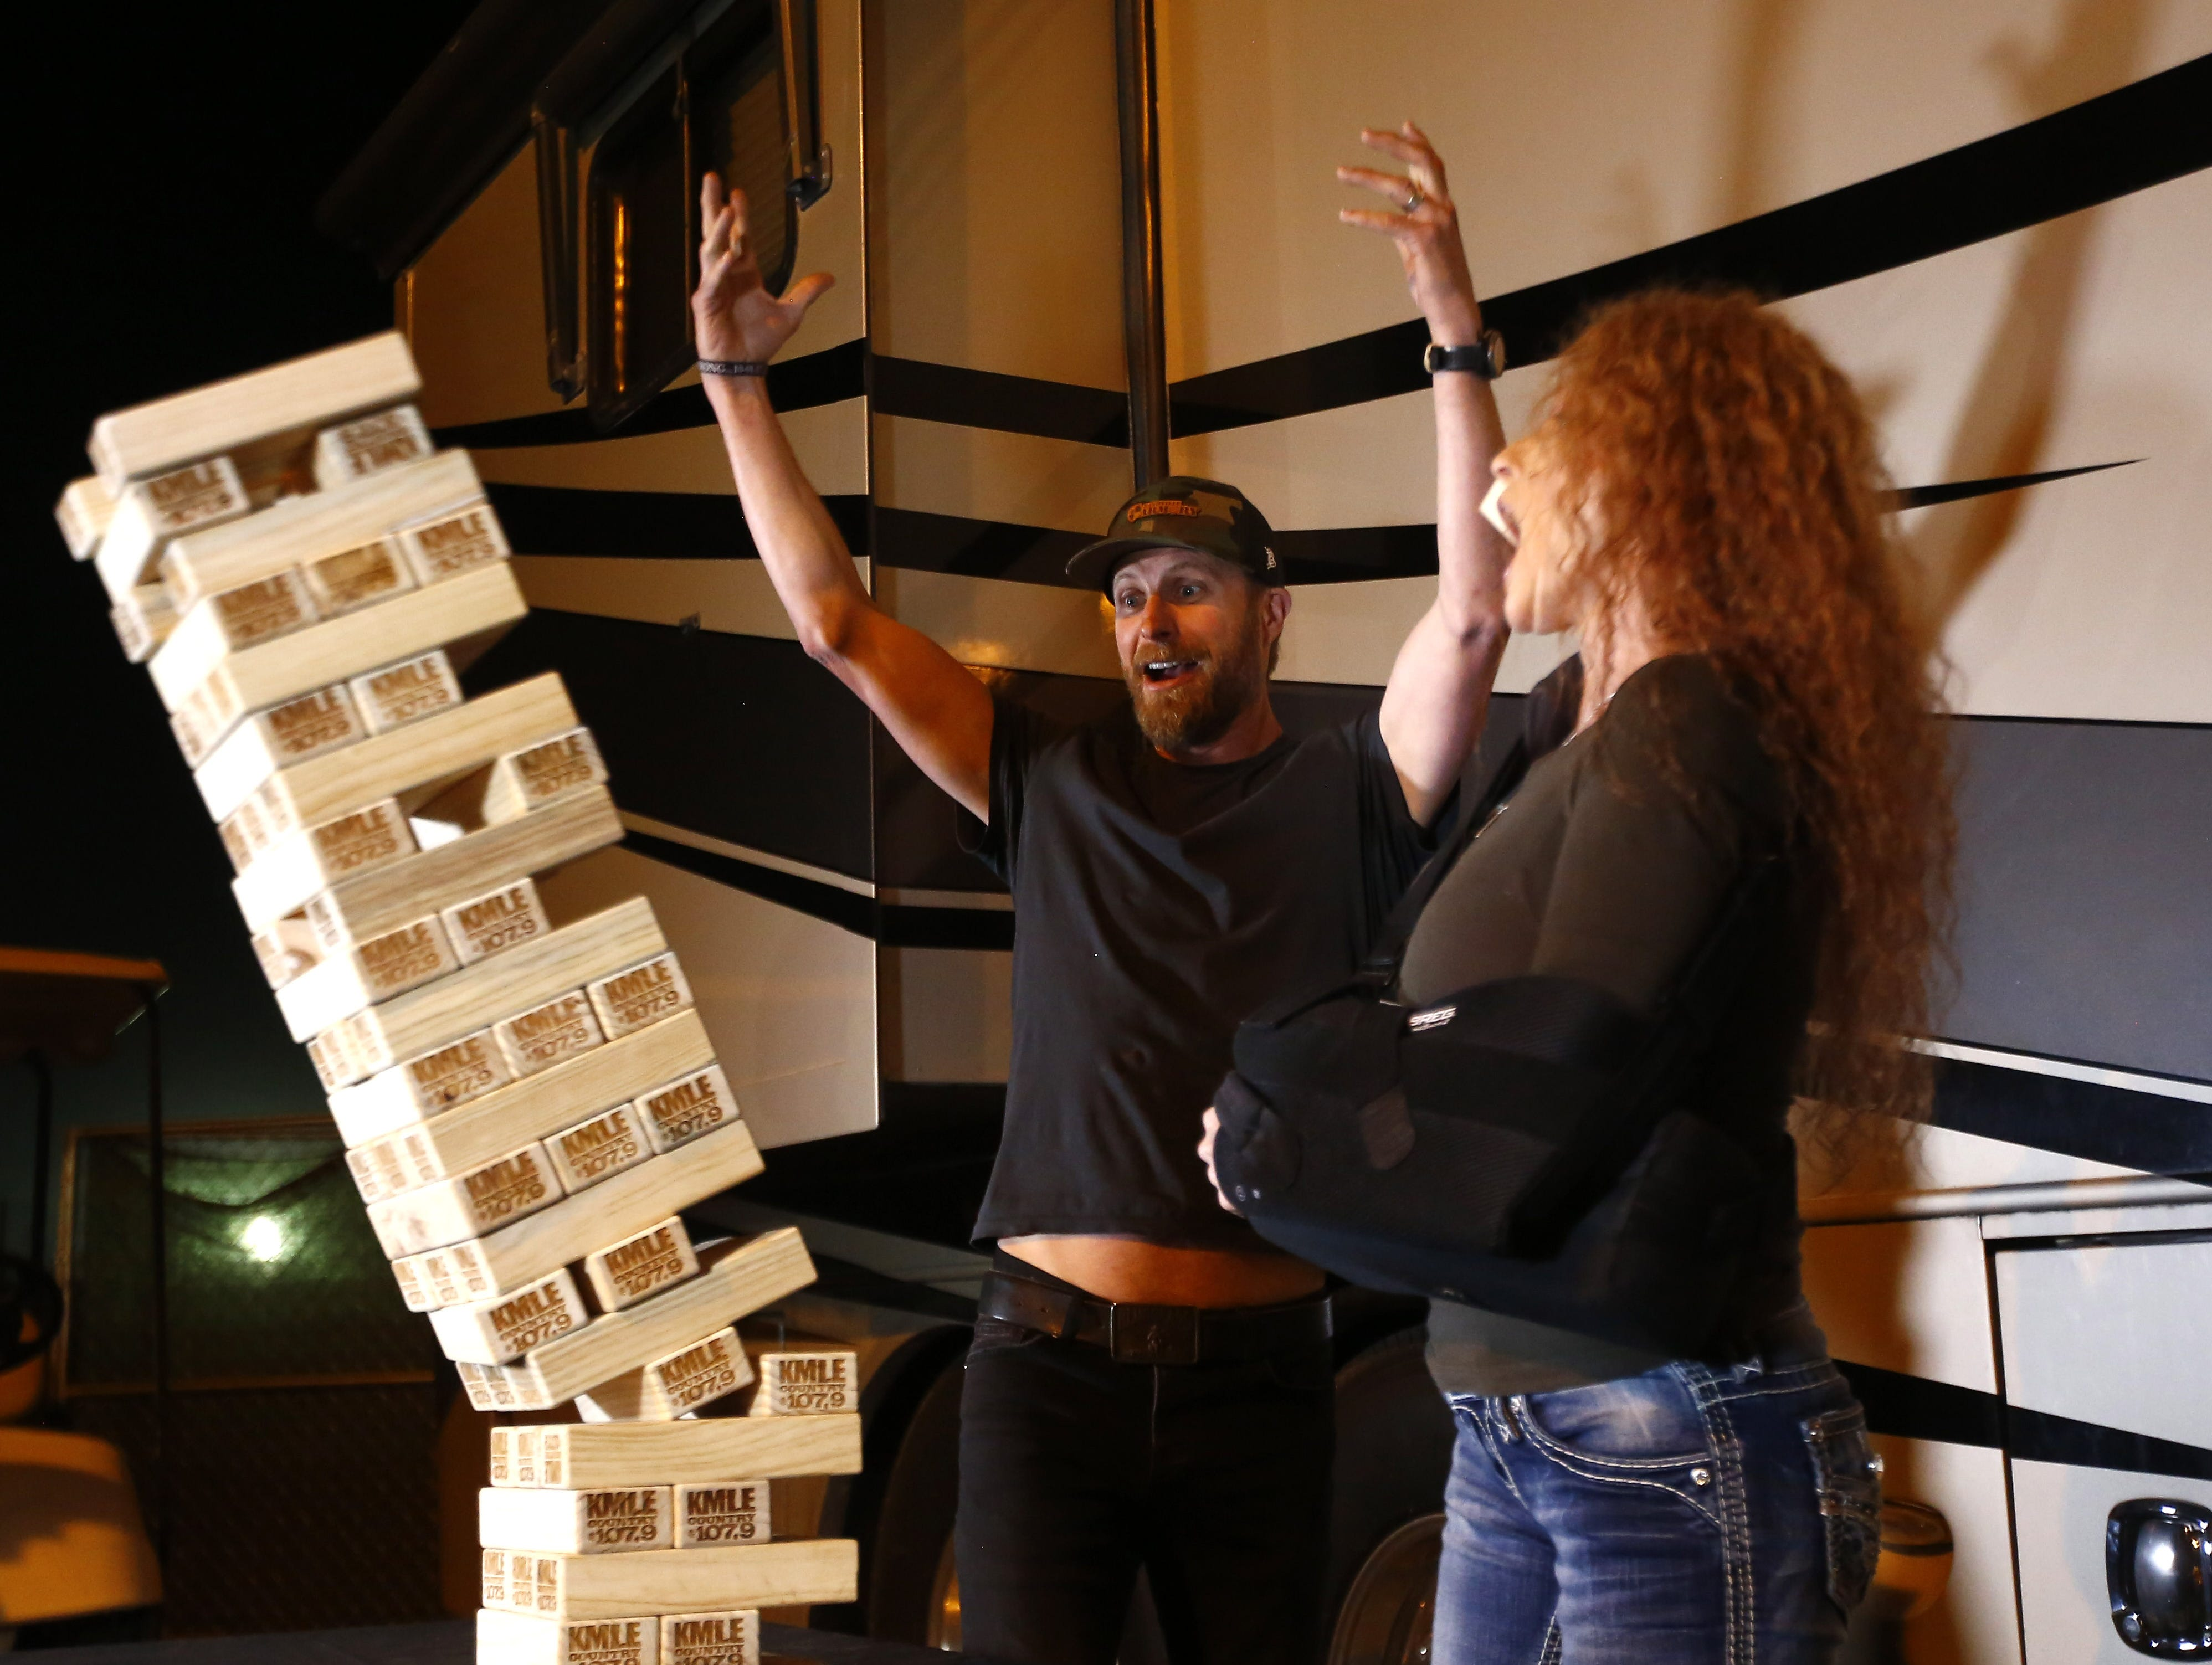 Dierks Bentley reacts as Lana Switzer pulls a block that causes the Jenga bricks to tumble at a KMLE event during Country Thunder in Florence, Arizona, on  April 13, 2019.